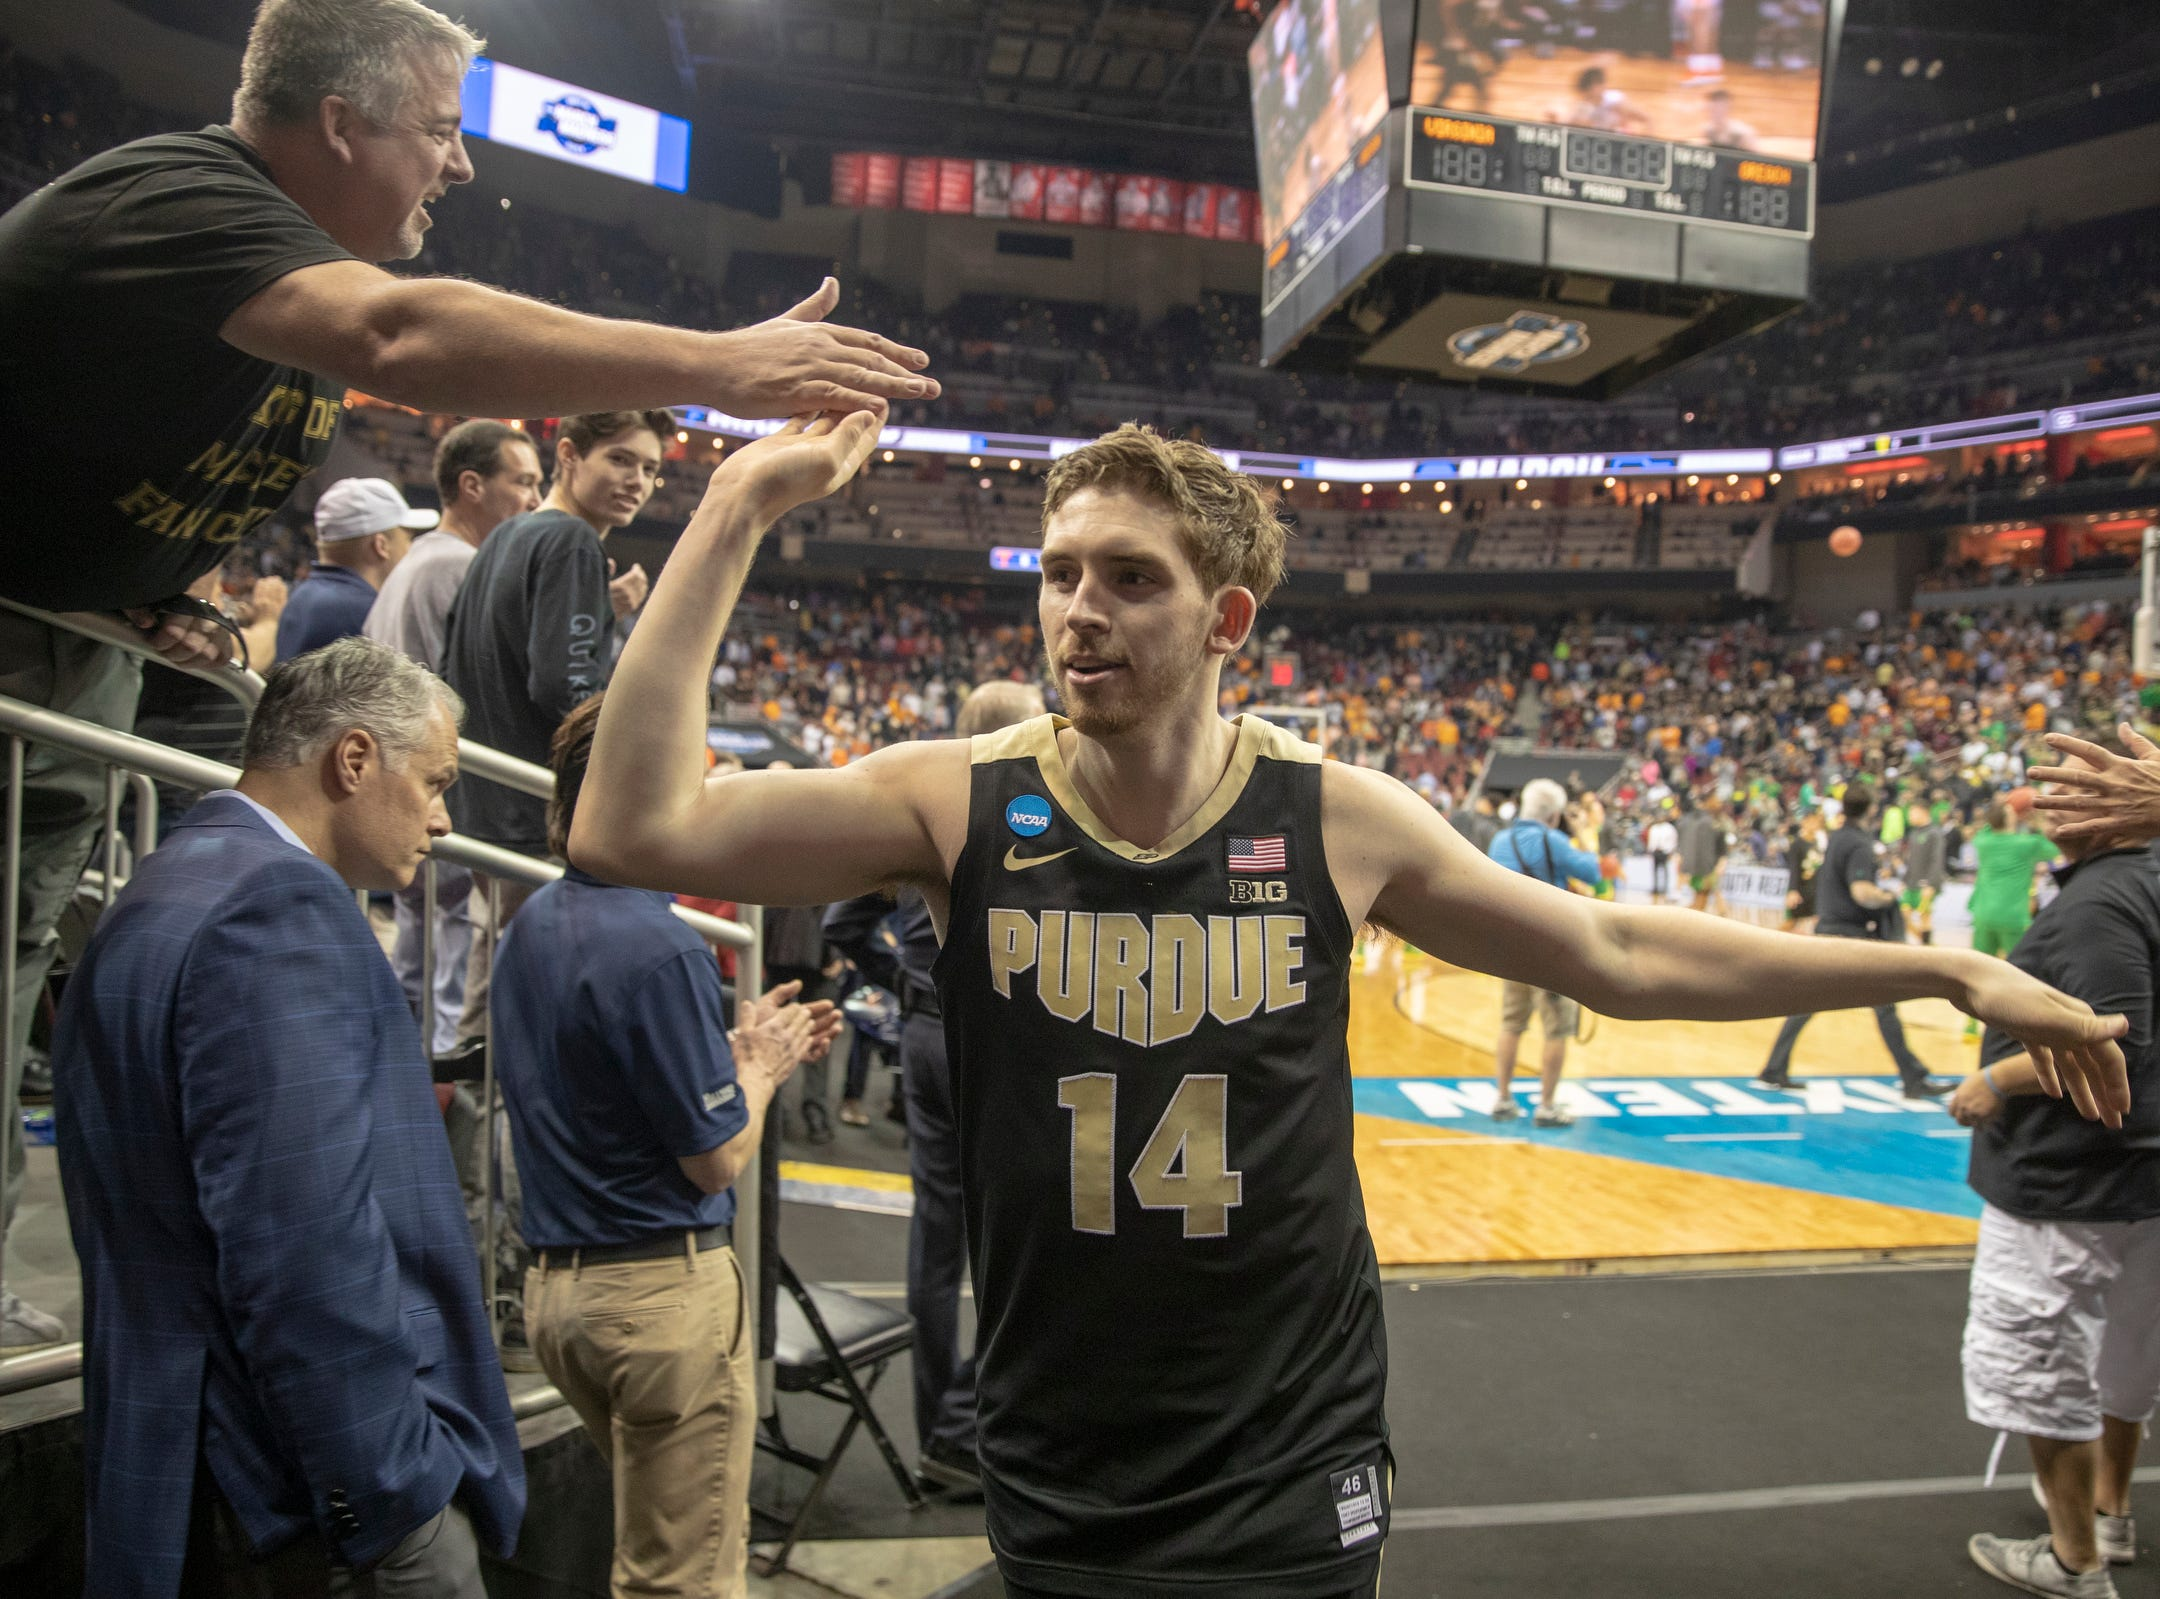 Ryan Cline of the Purdue Boilermakers slaps hands with fans after their win over Tennessee, NCAA Division 1 Men's Basketball 'Sweet Sixteen' game, KFC Yum Center, Louisville, Thursday, March 28, 2019. Purdue beat Tennessee 99-94.